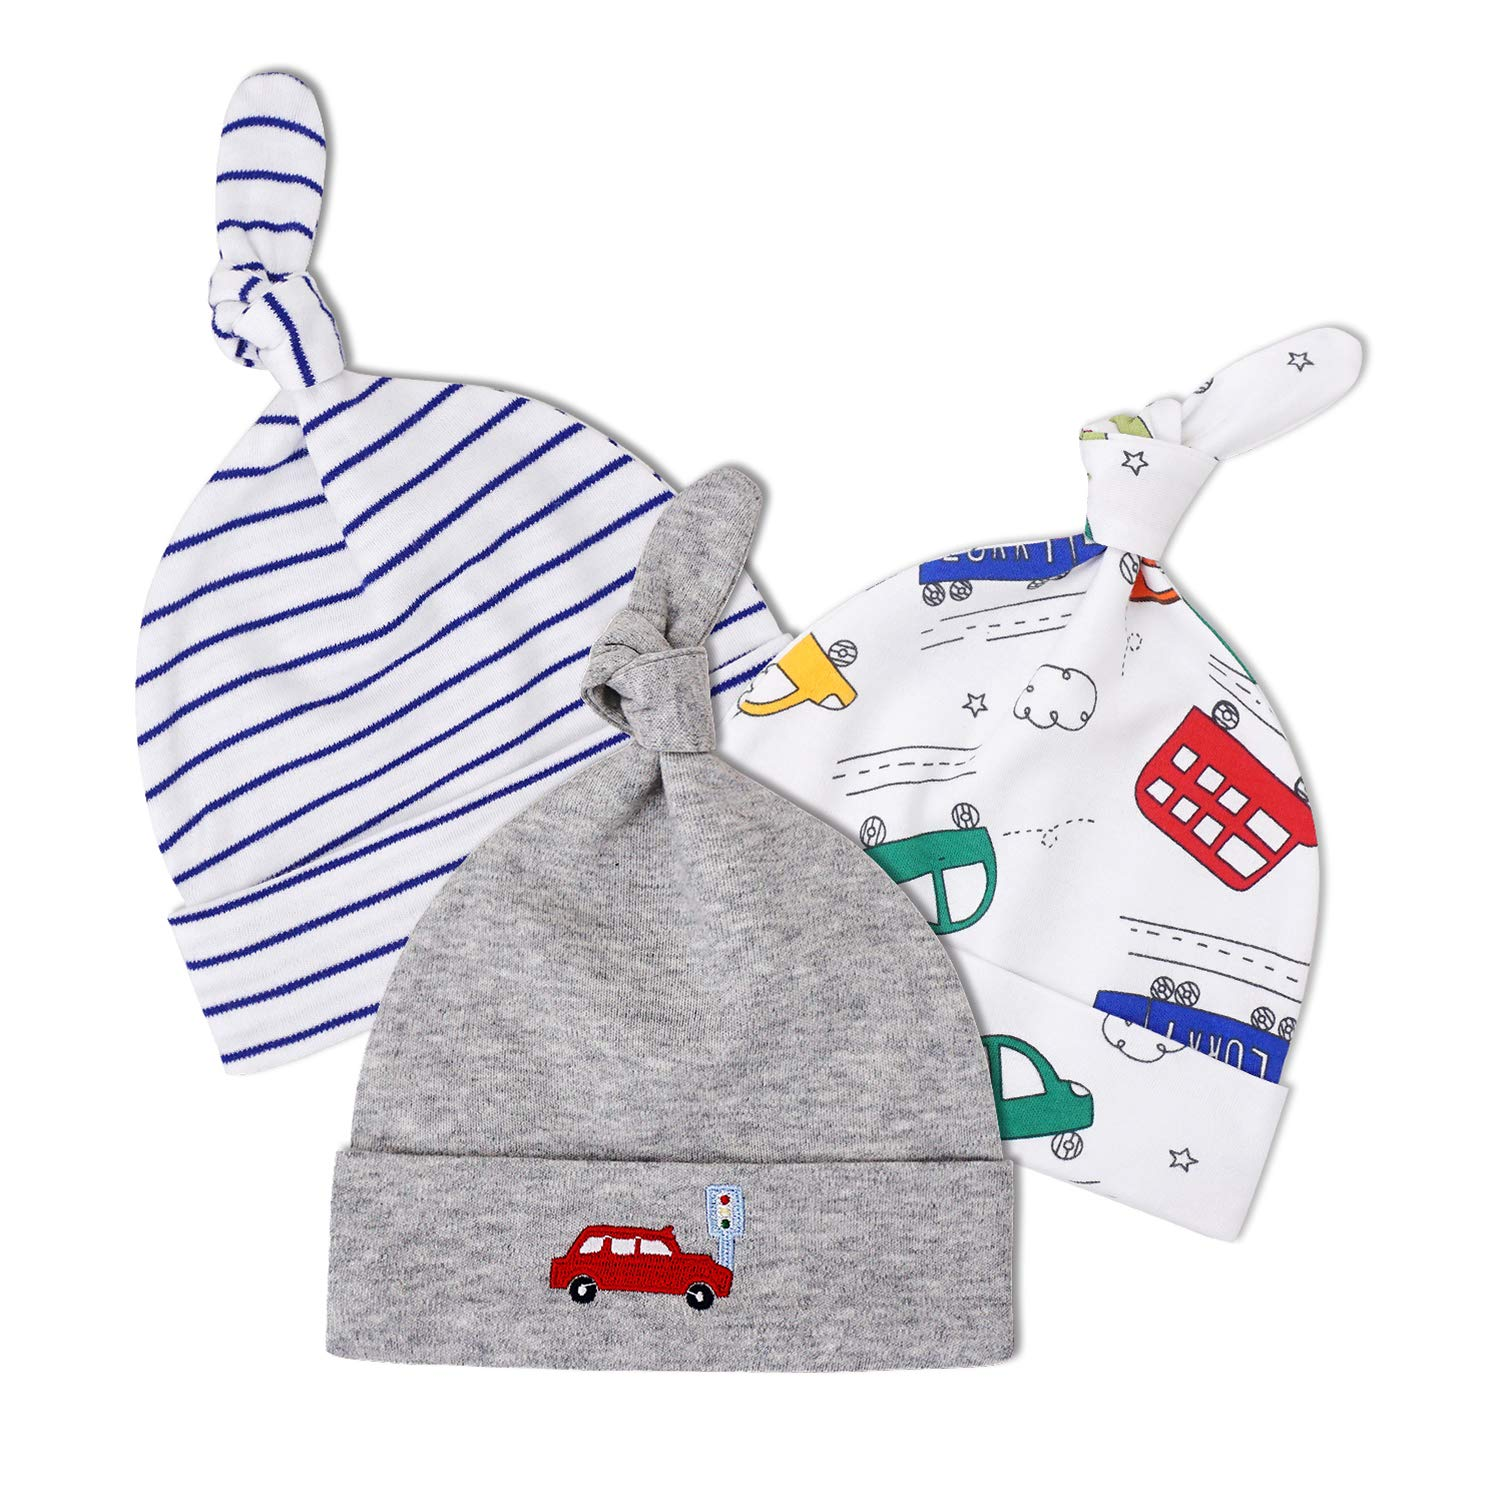 fb97ff481 WAYMO Baby Girls Hats 0-6 Months Newborn Baby Beanie Hats for Boy & Unisex  with Soft 100% Cotton Caps 3 Pack【2019 New】